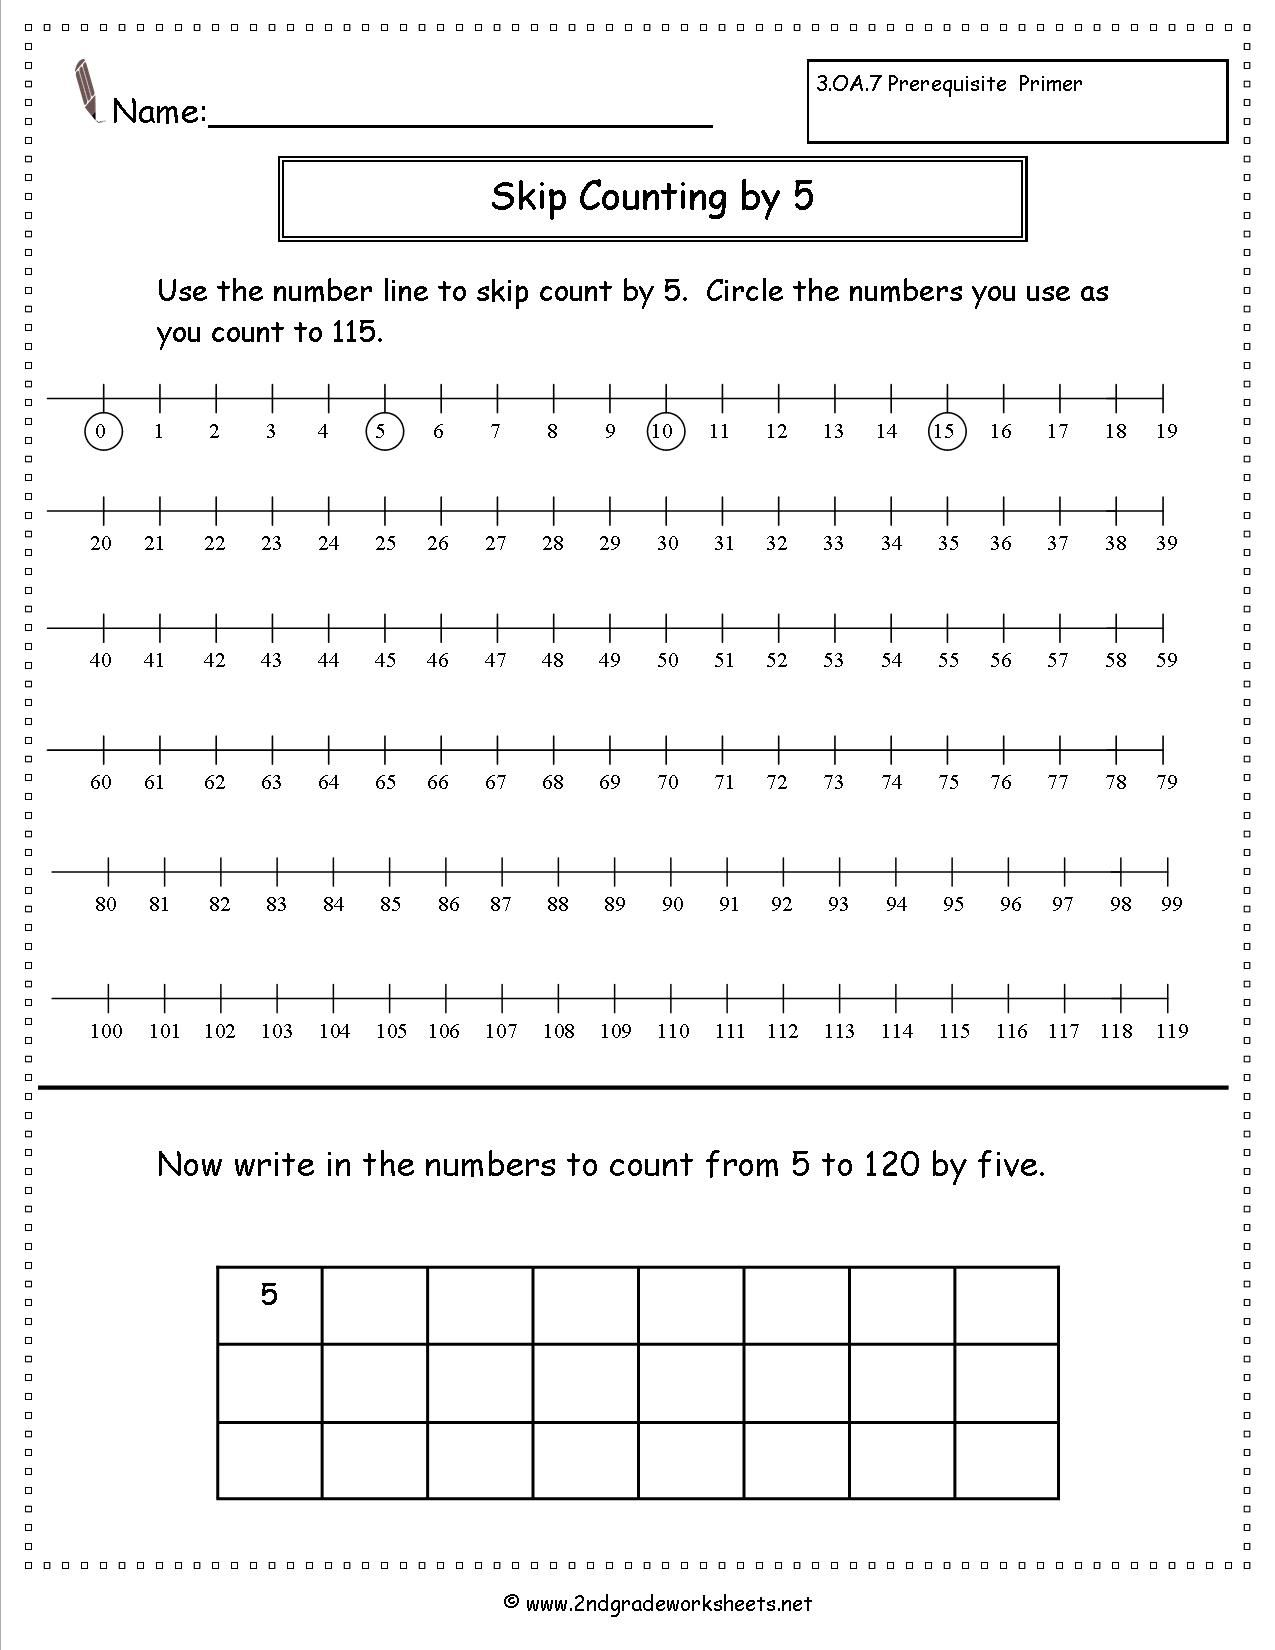 Skip Counting By 5 Worksheet